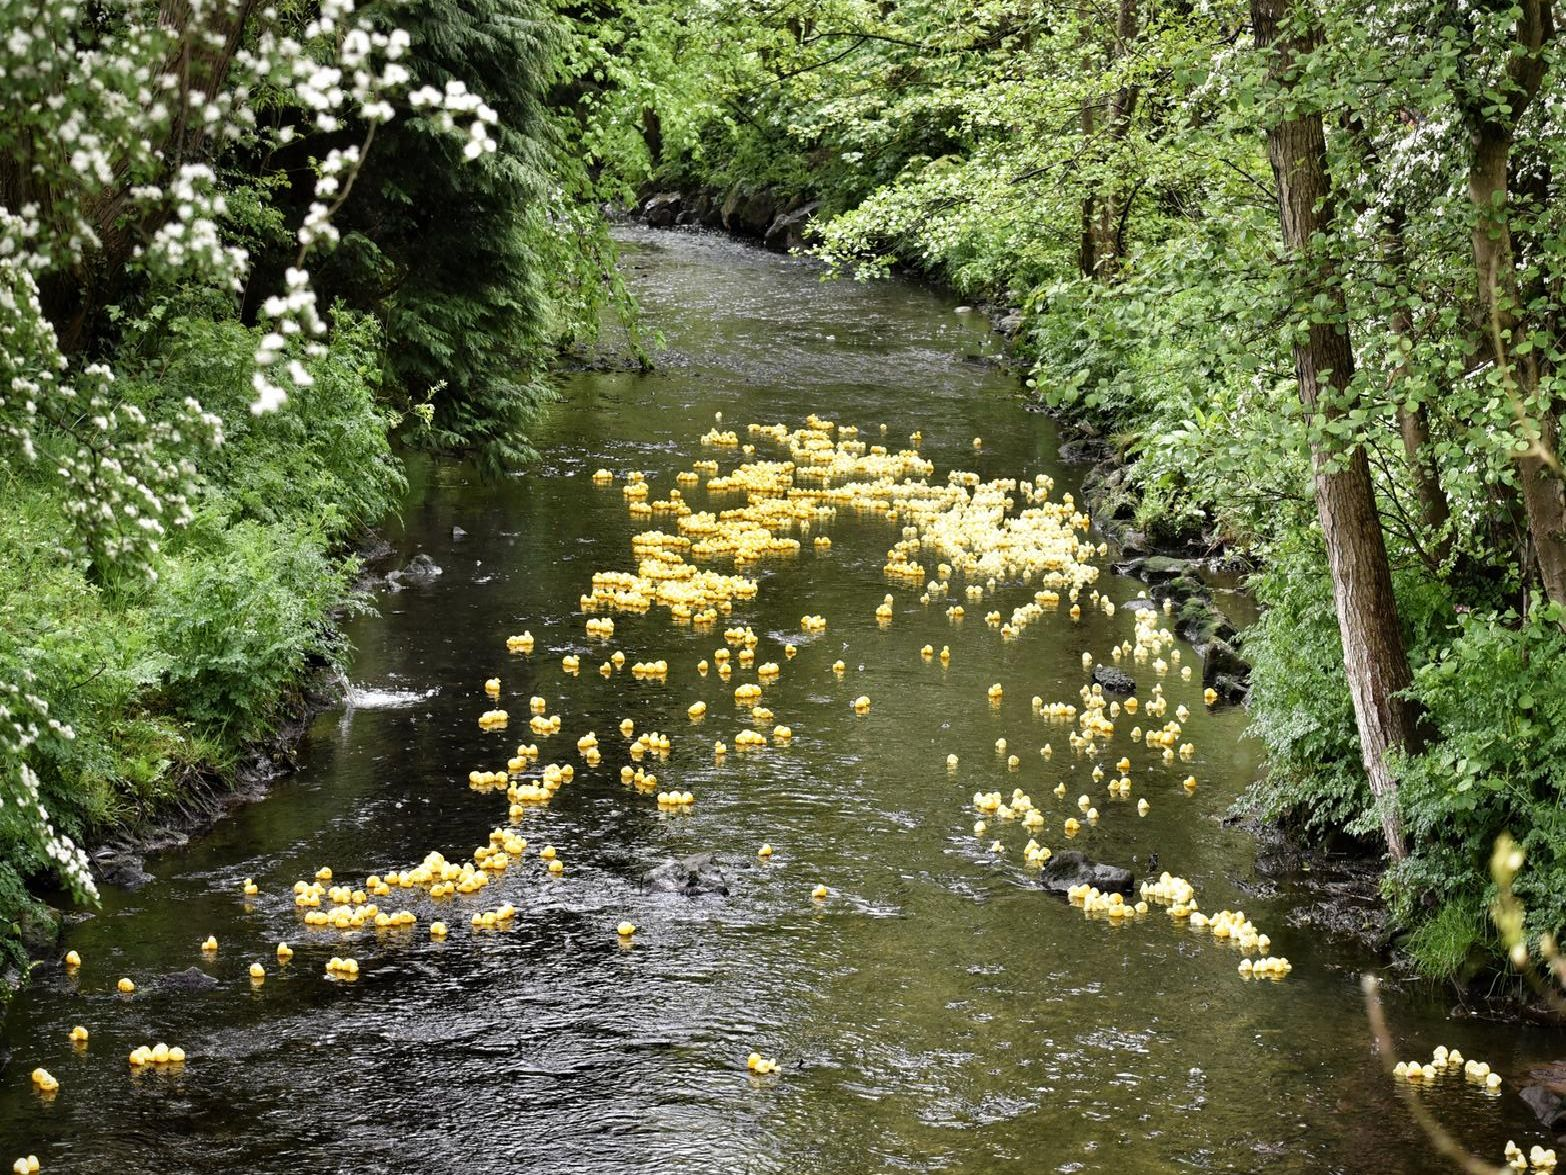 The Ducks make their way down the river